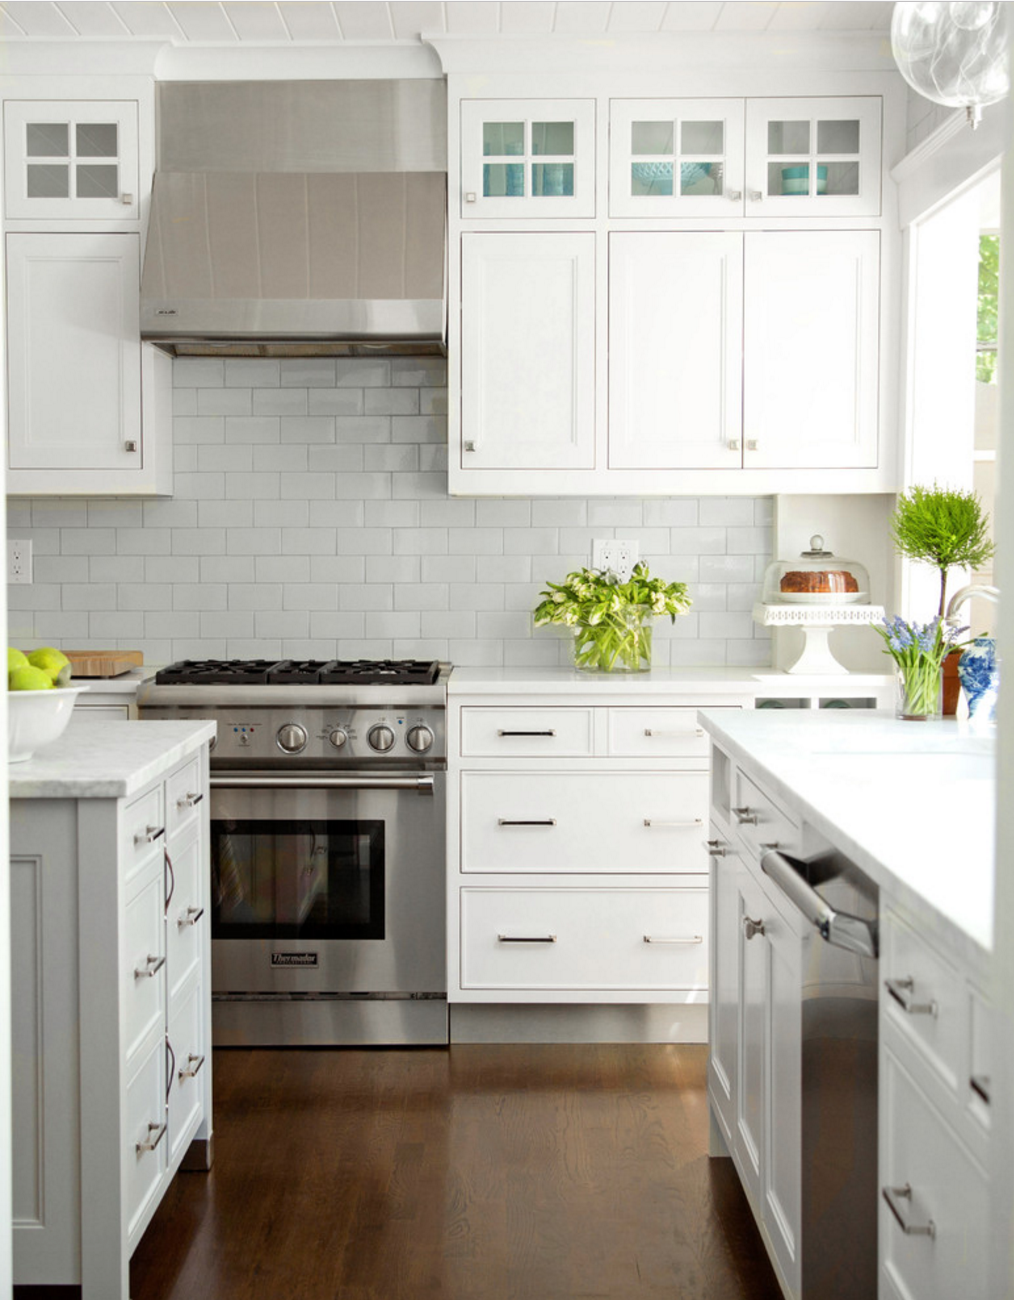 Transcend Collection brings a modern look to a colonial kitchen ...